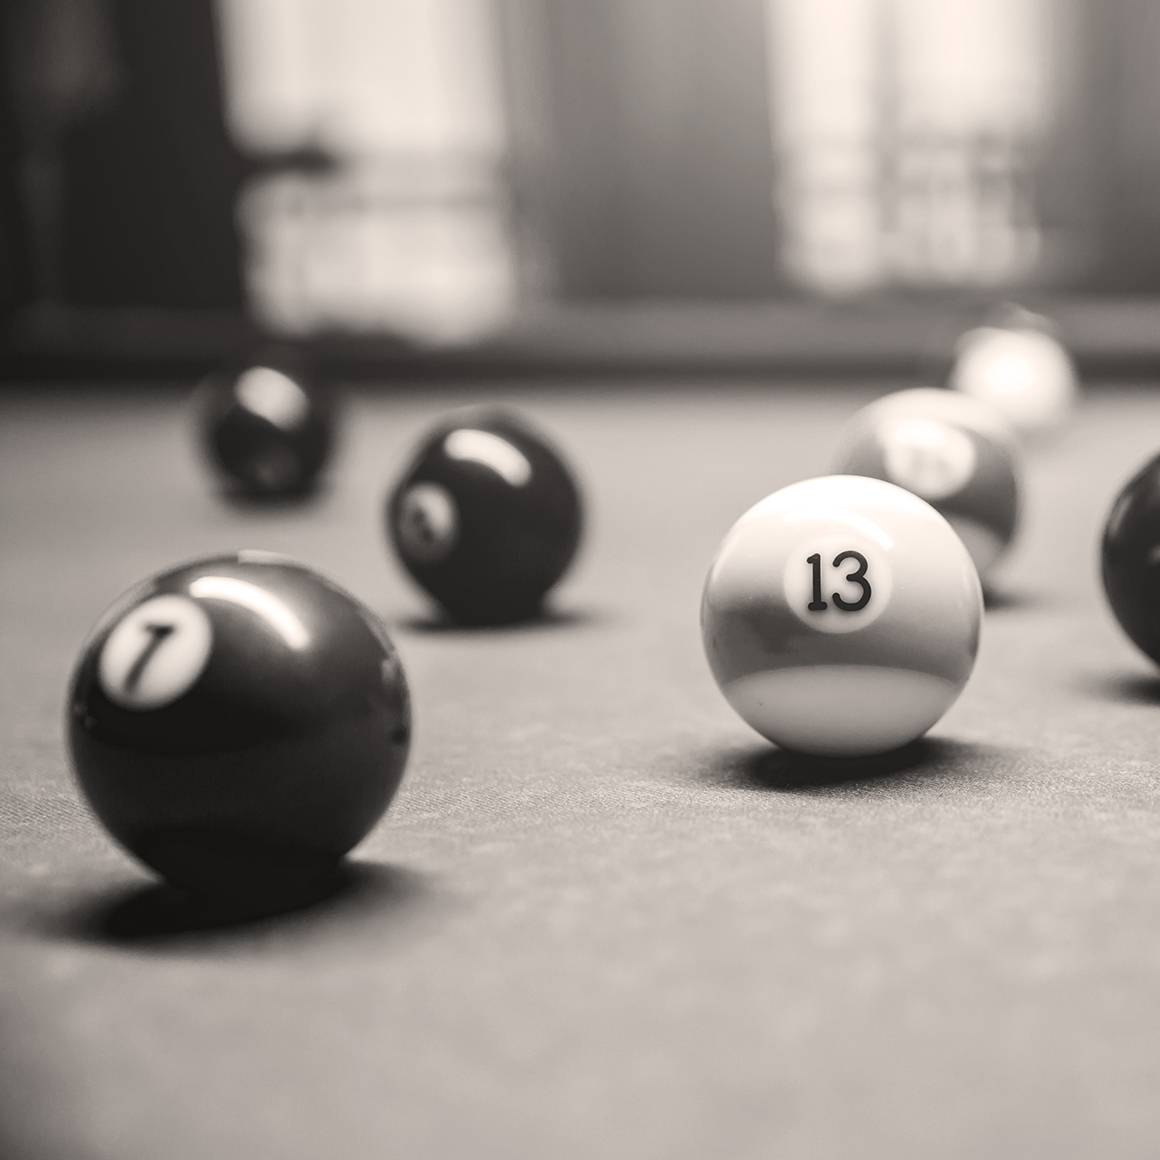 Image of pool balls